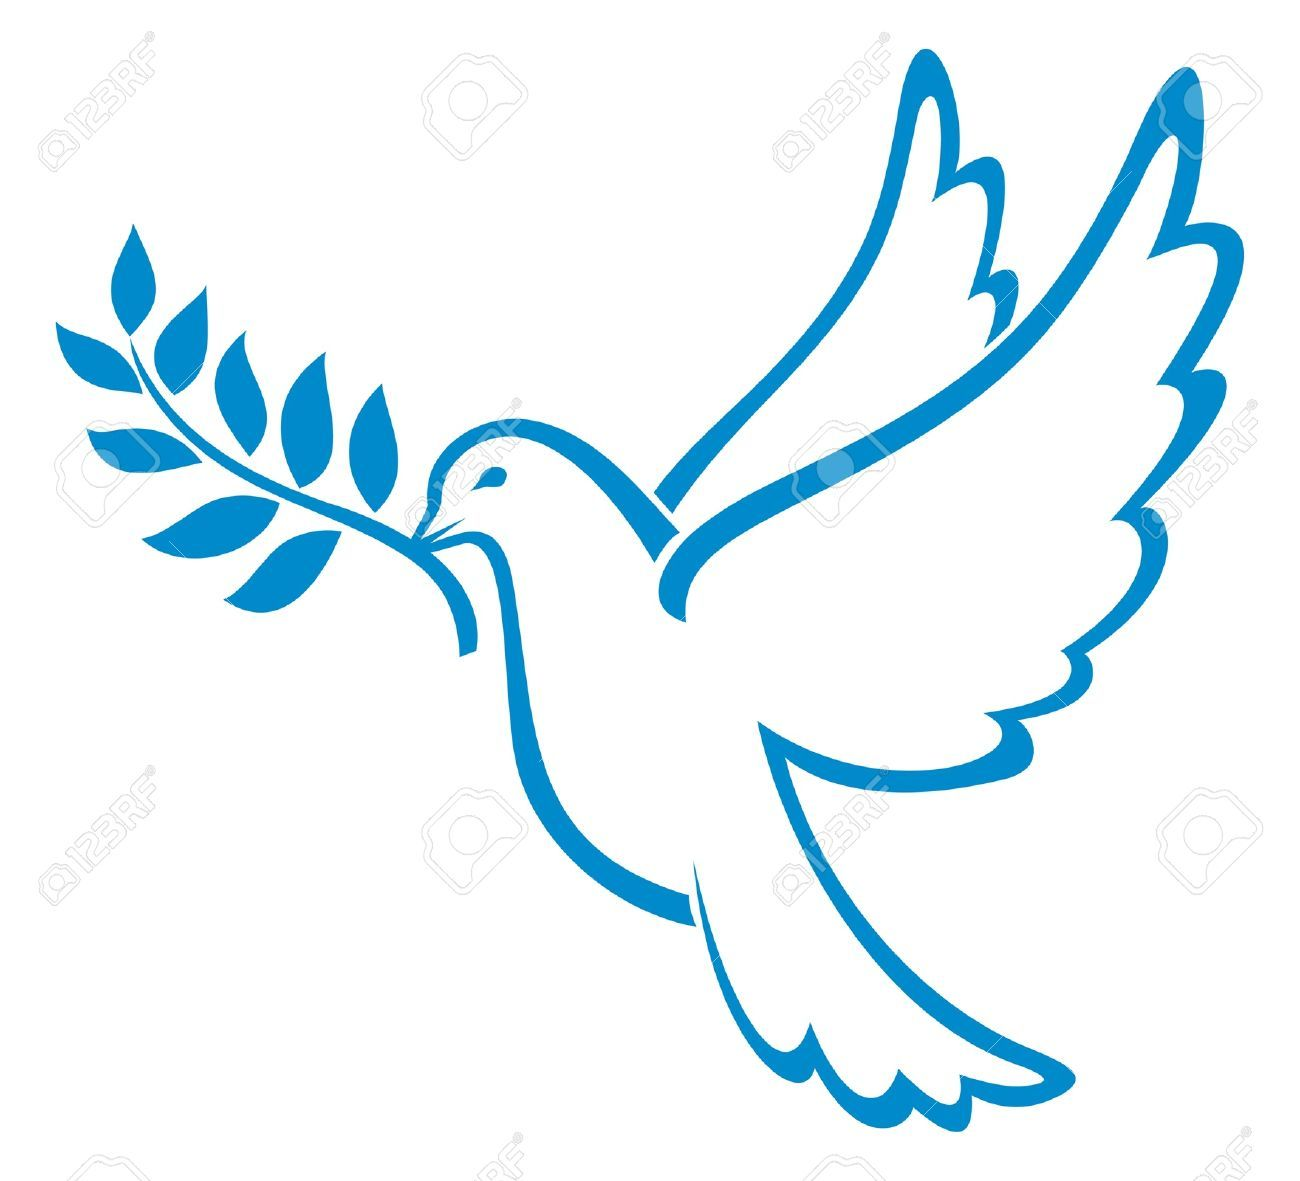 hight resolution of 1300x1181 peace dove with olive branch clip art beautiful 2017 mom tattoo